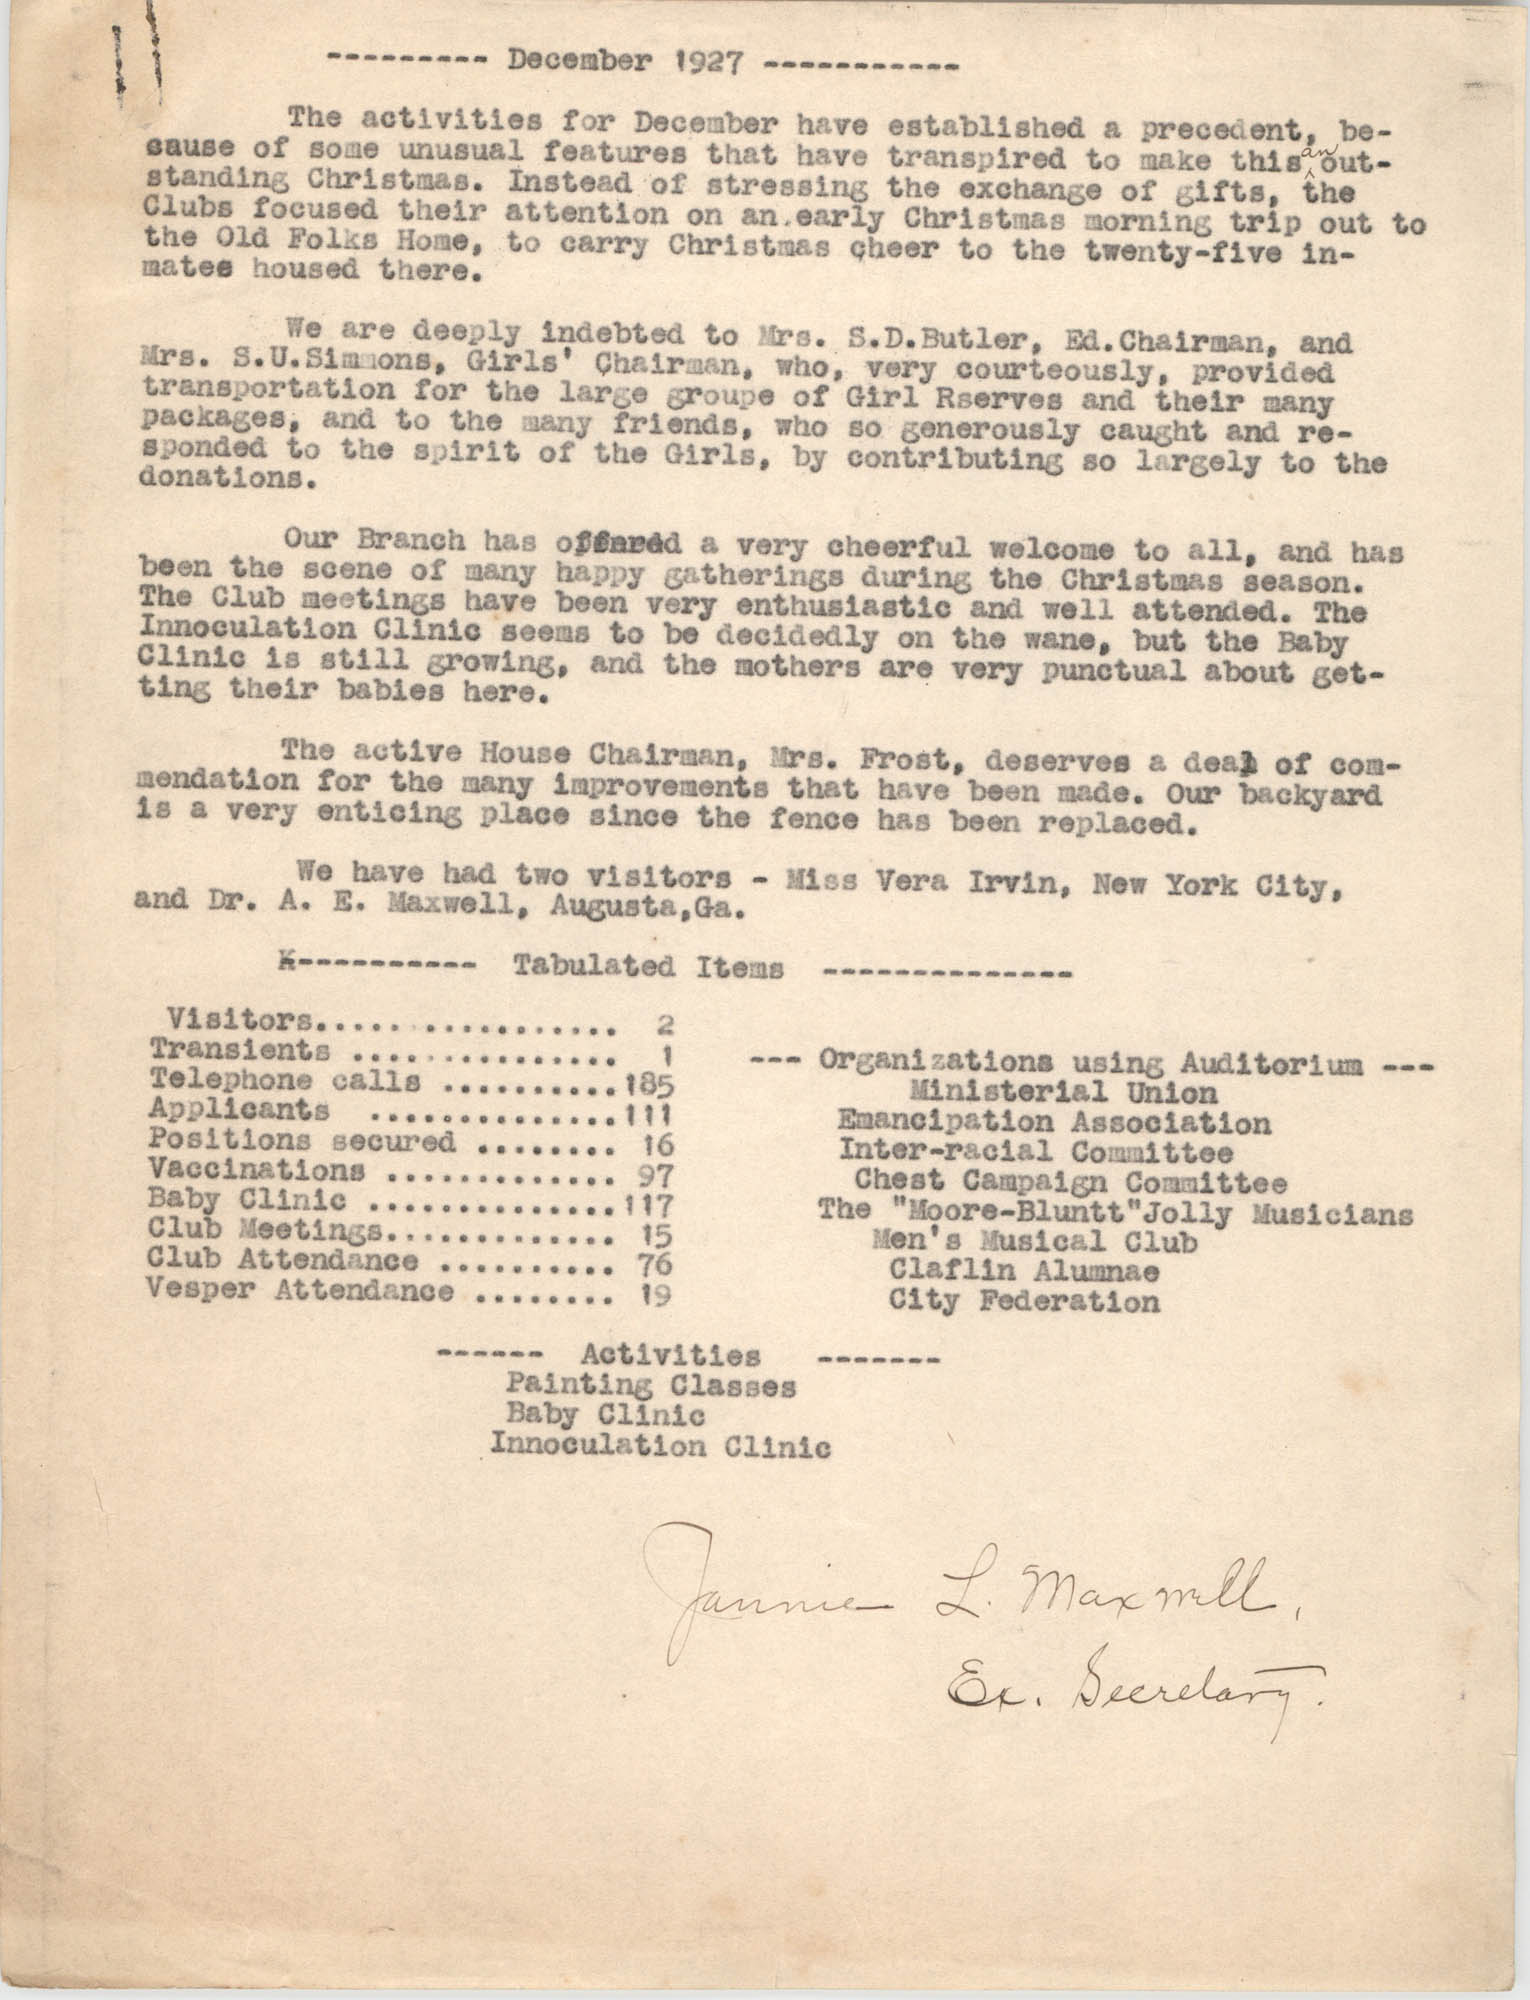 Monthly Report for the Coming Street Y.W.C.A., December 1927